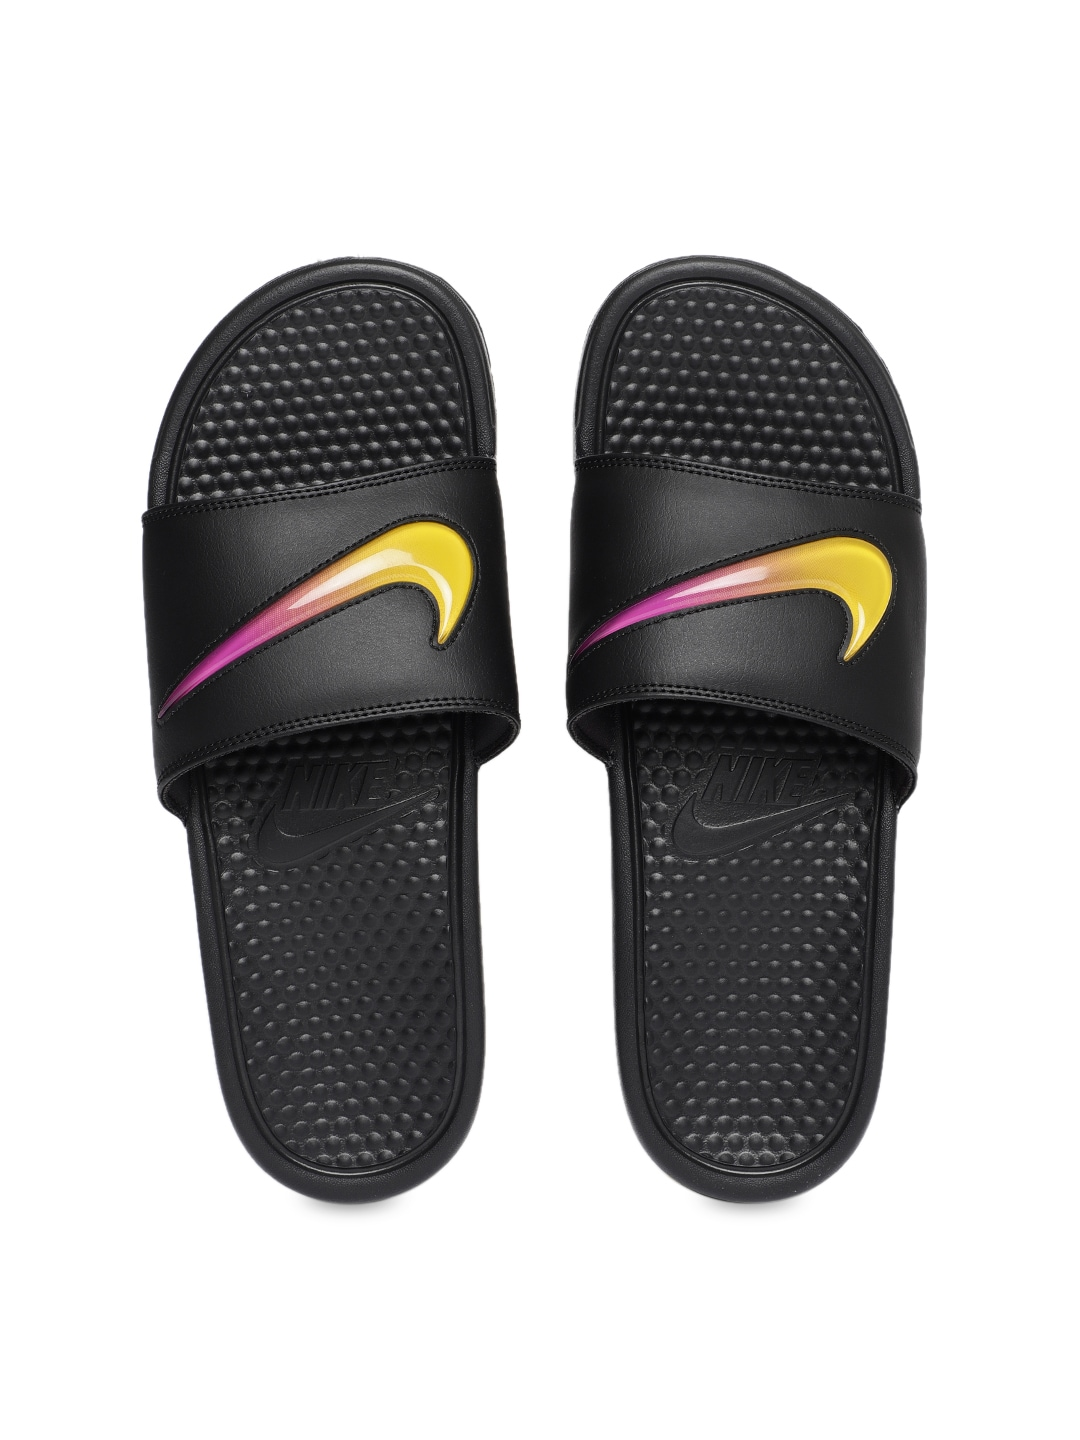 a47163d4252f9 Nike Flip-Flops - Buy Nike Flip-Flops for Men Women Online